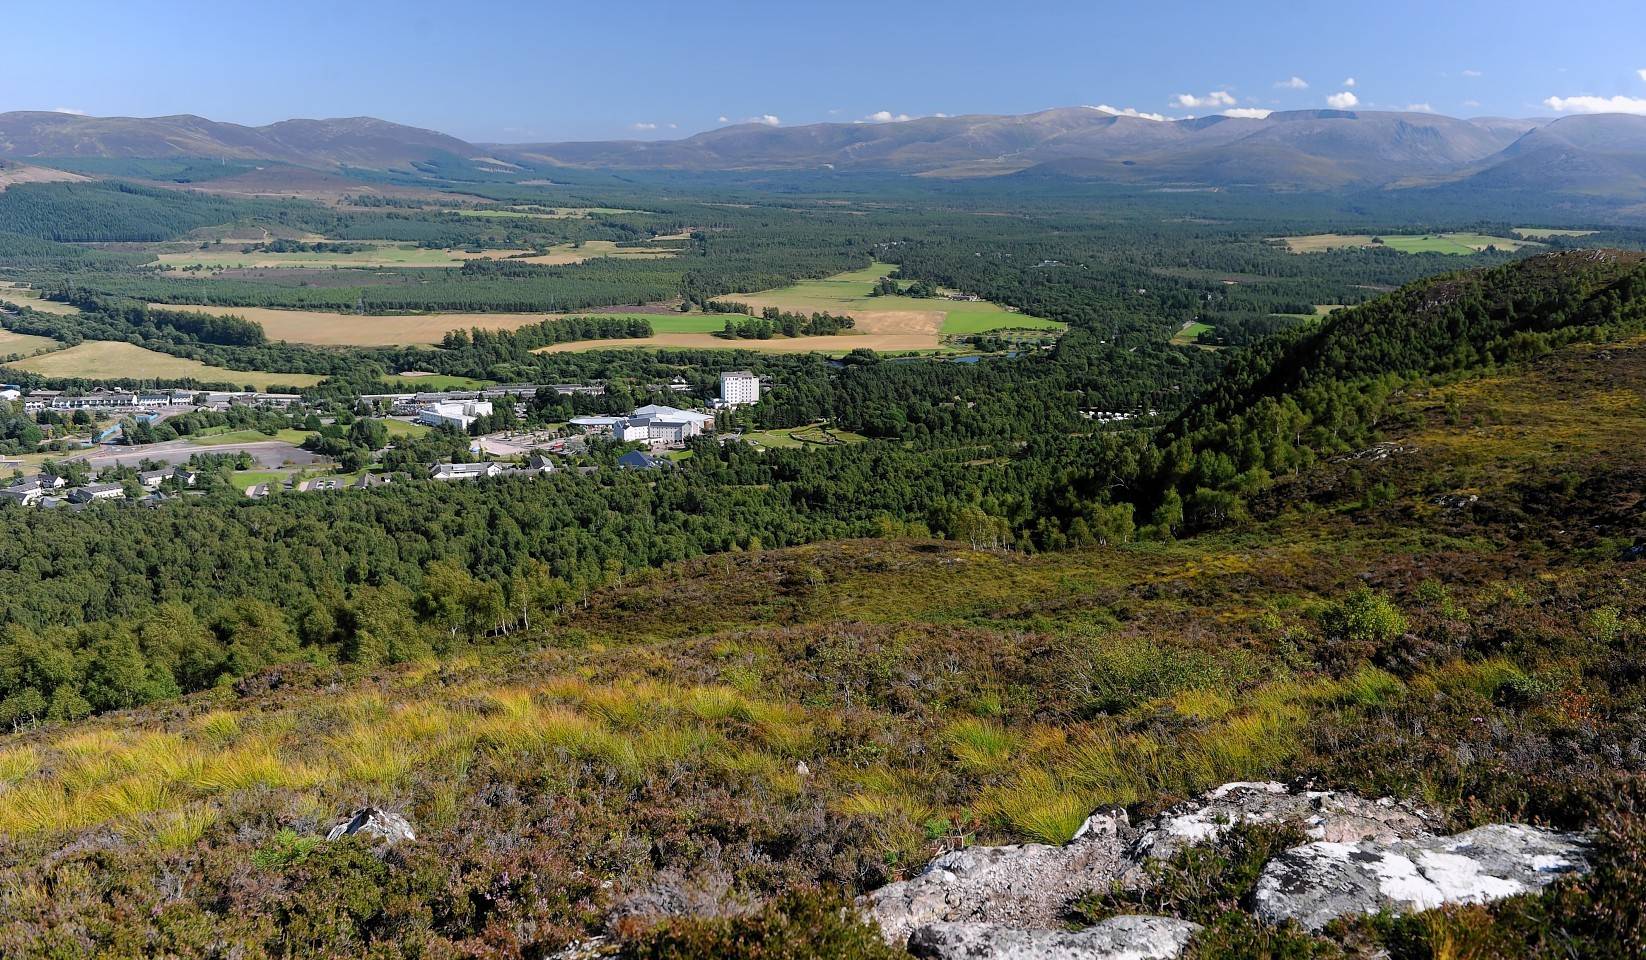 The site of the proposed An Camas Mor village near Aviemore